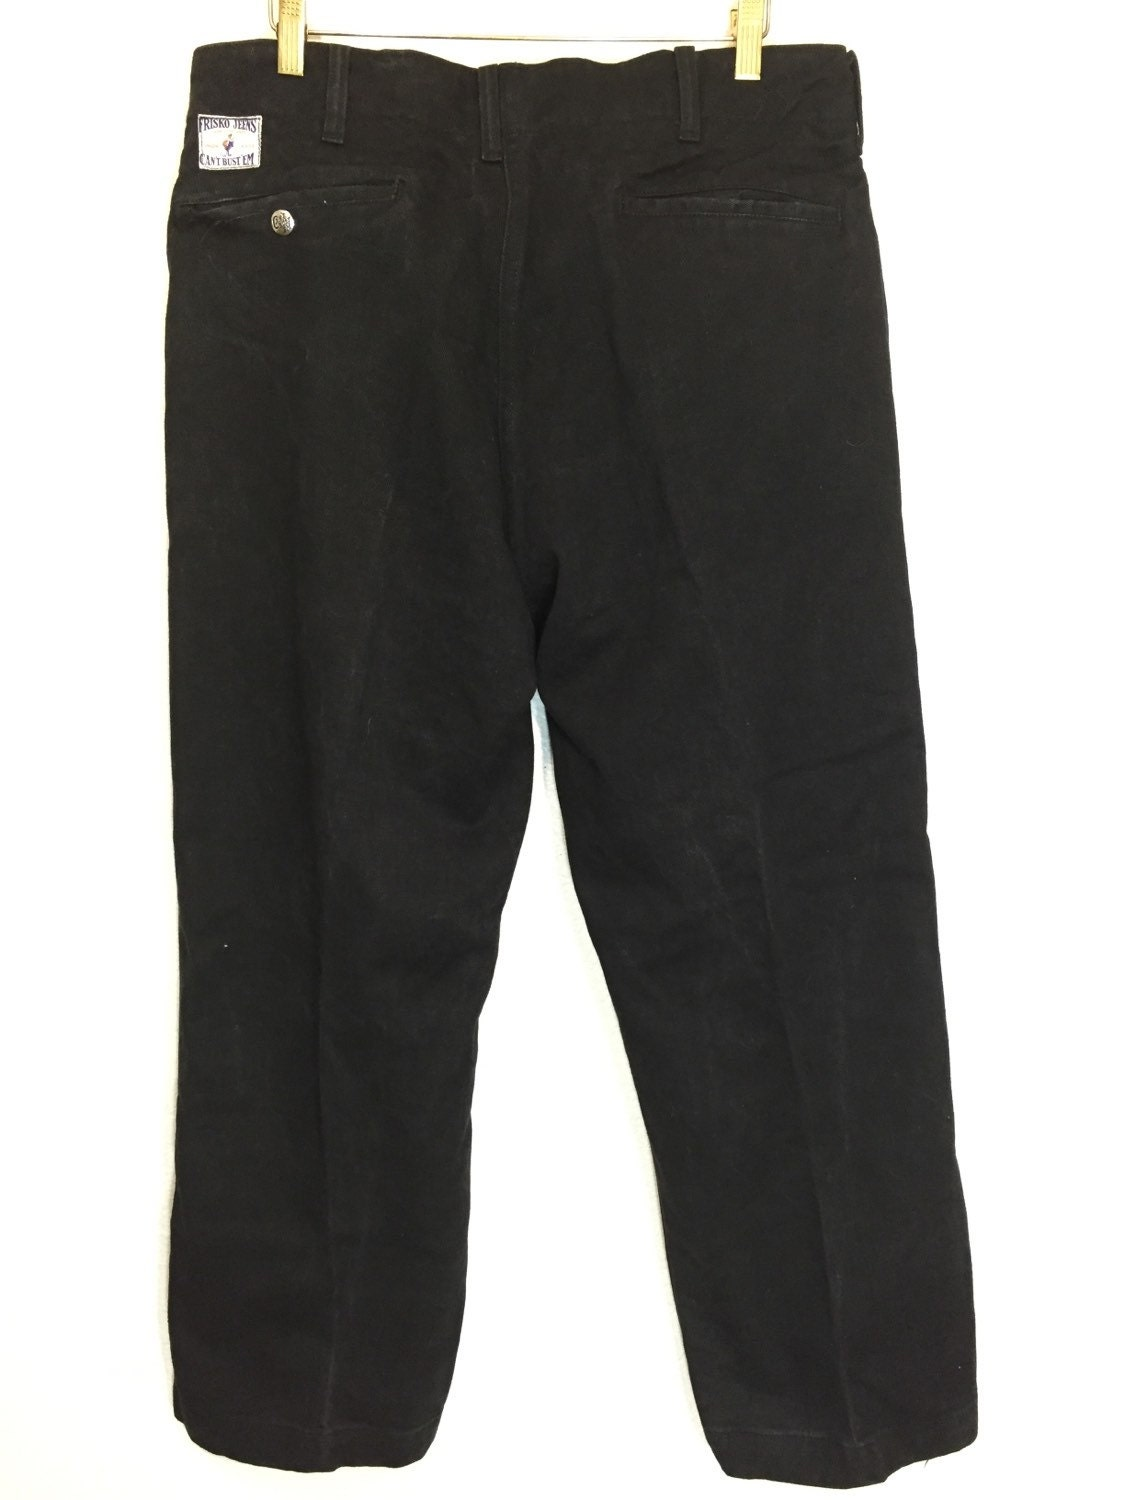 Mens Jeans Pants Made In Usa The Union Shop